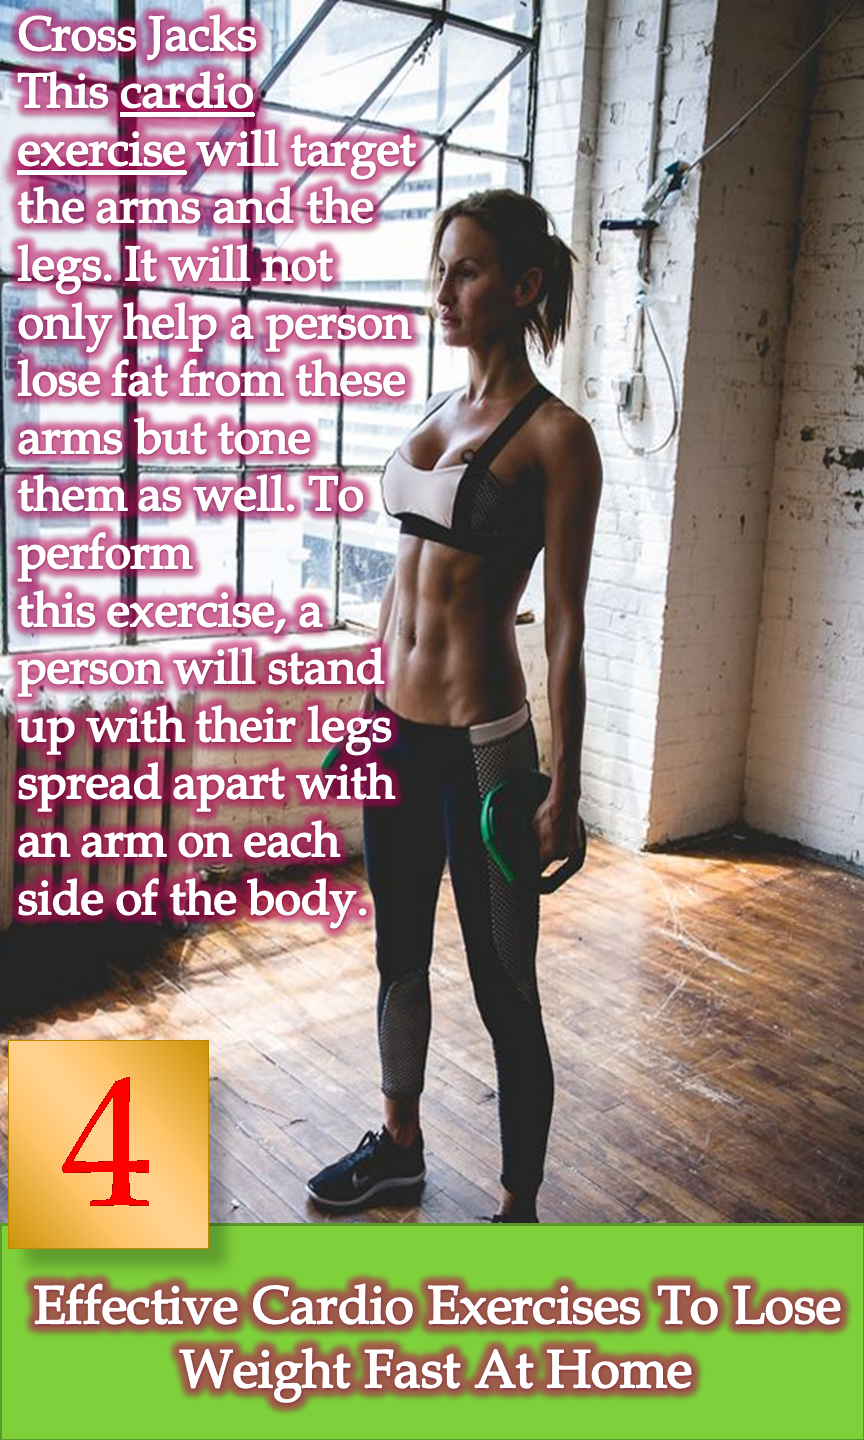 Workouts to lose fat on your legs image 3